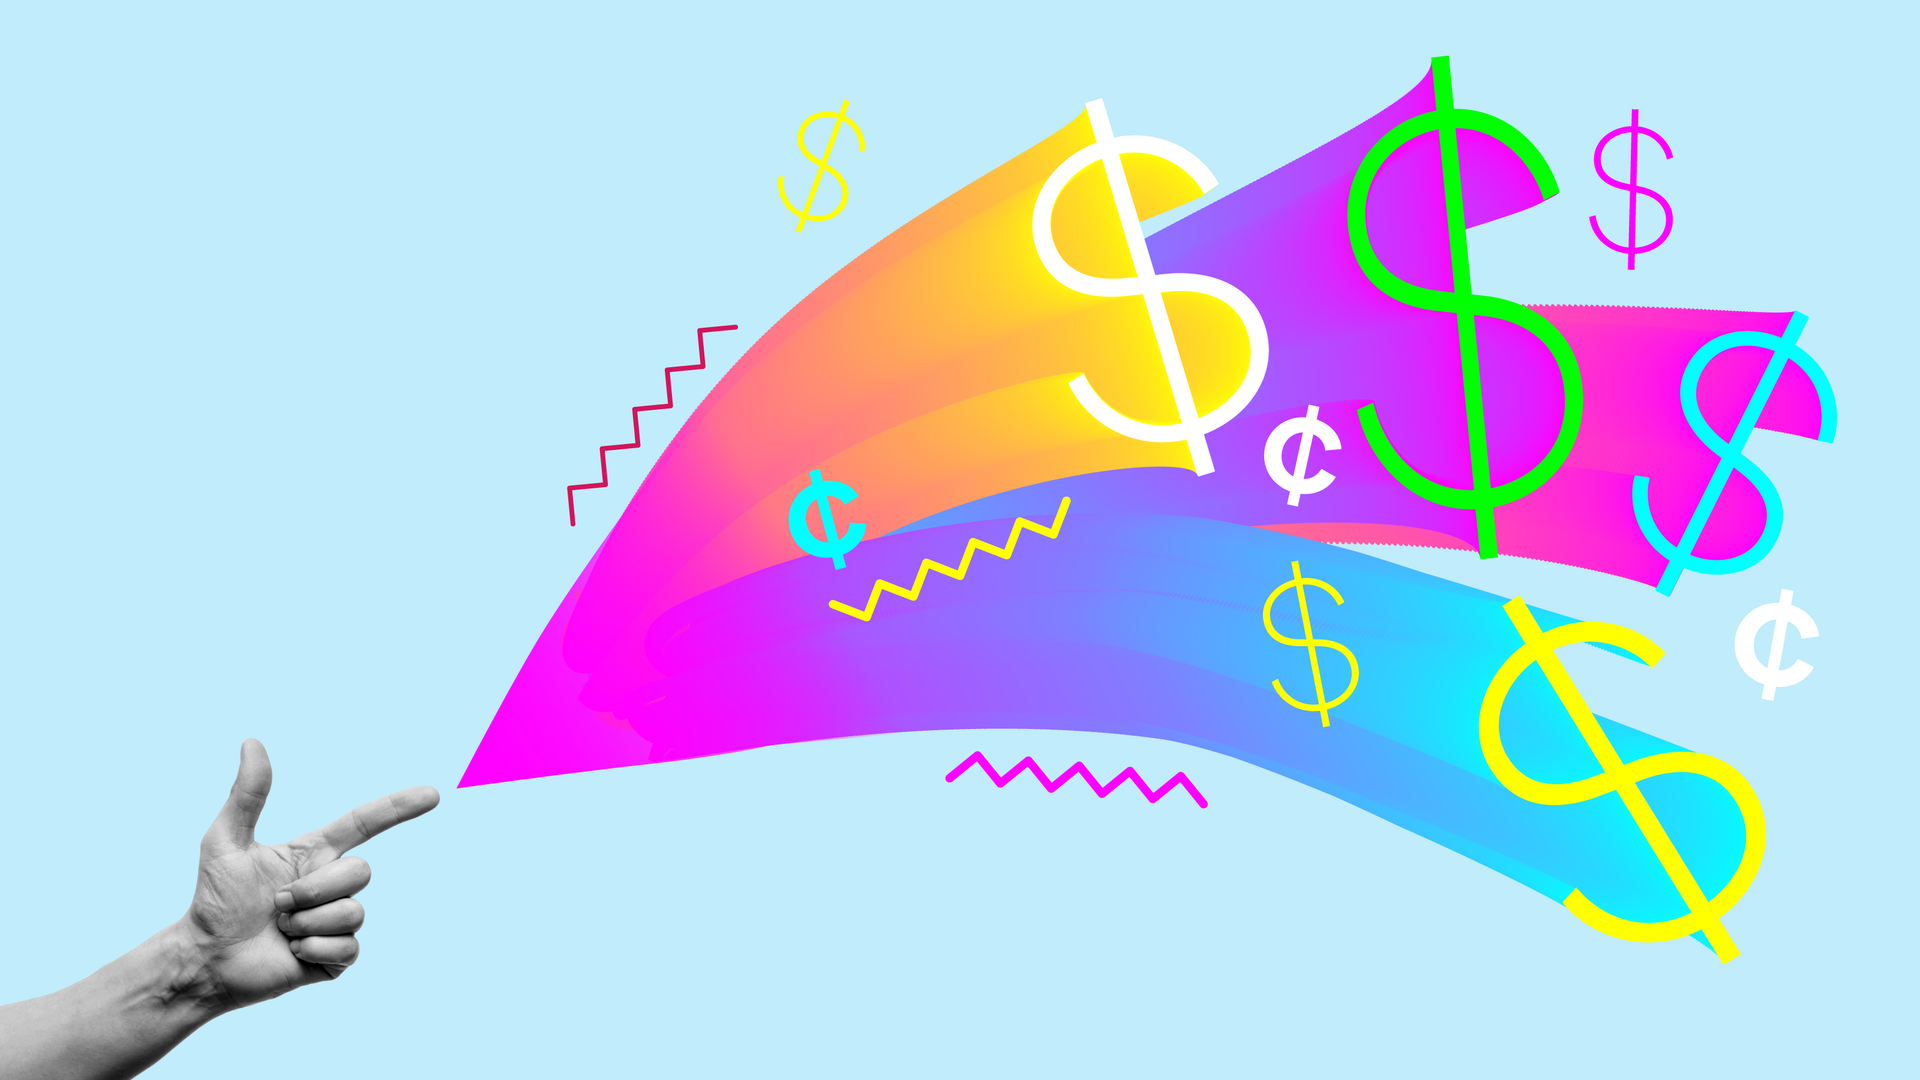 Graphic of money and rainbows being shot out of pointer finger.